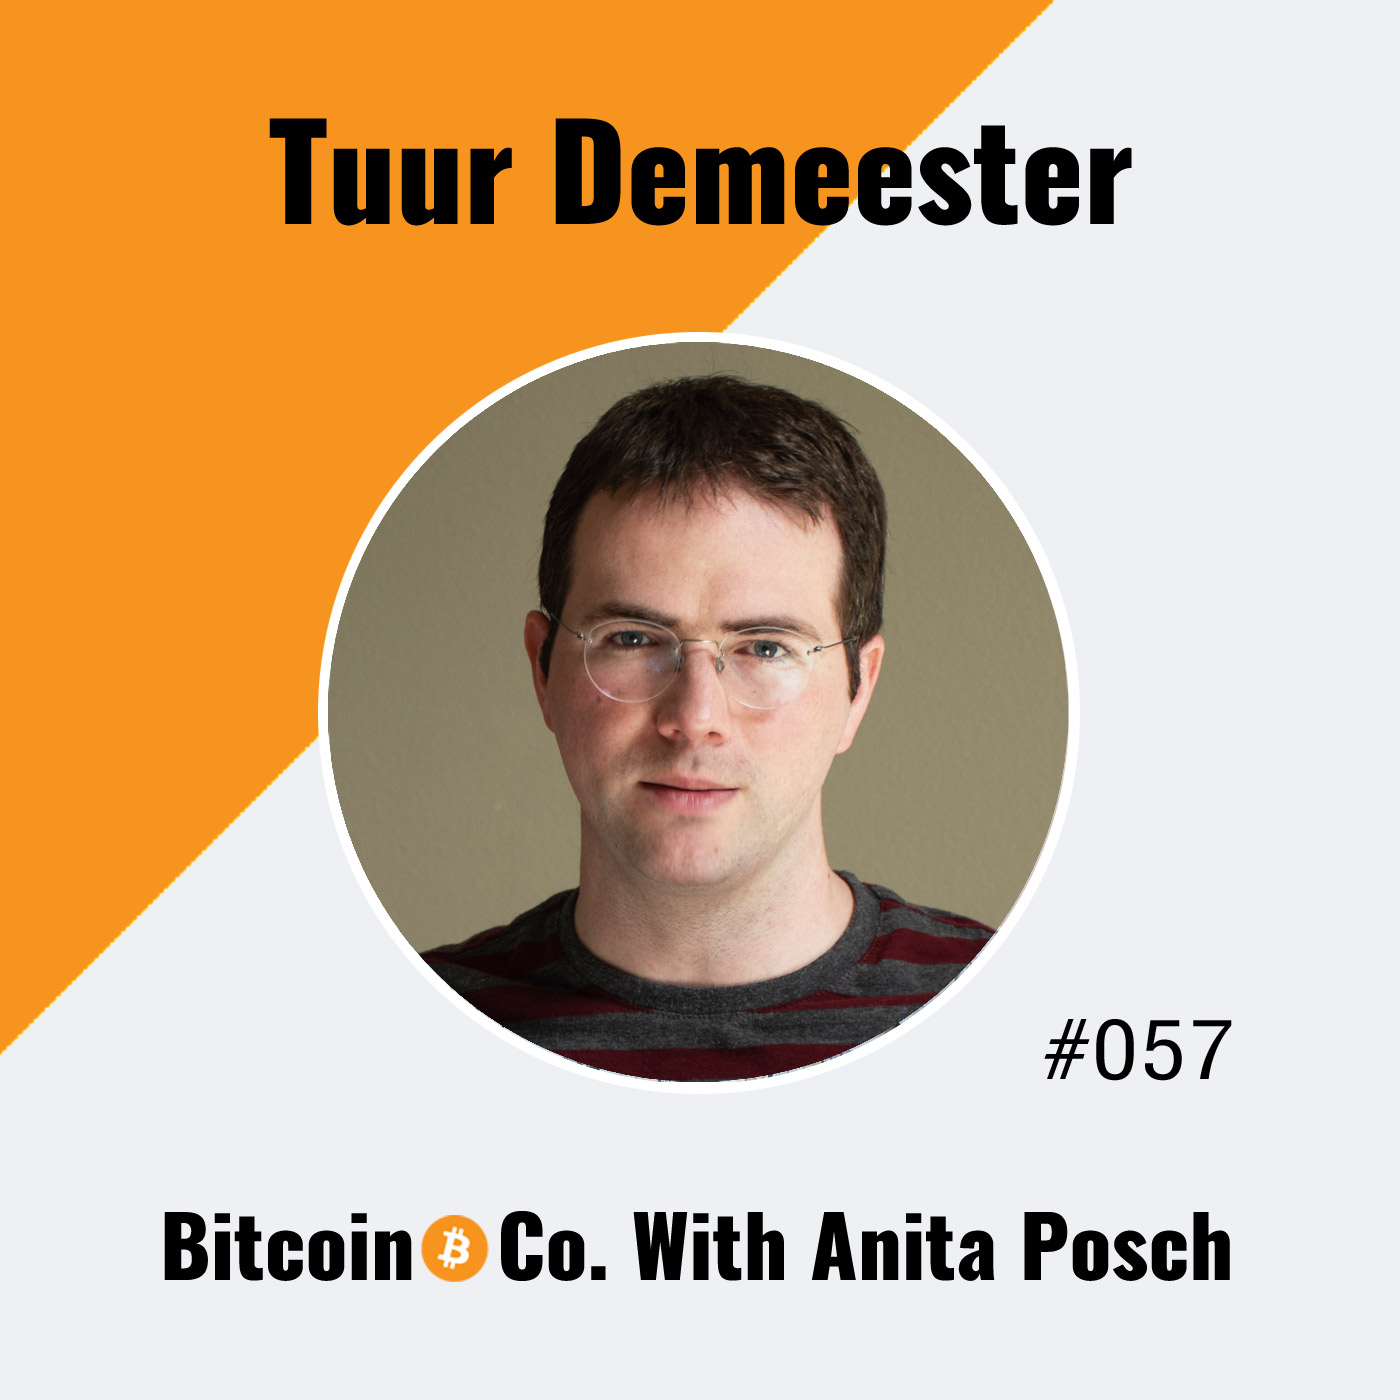 Tuur Demeester: The Bitcoin Reformation in Times of COVID-19